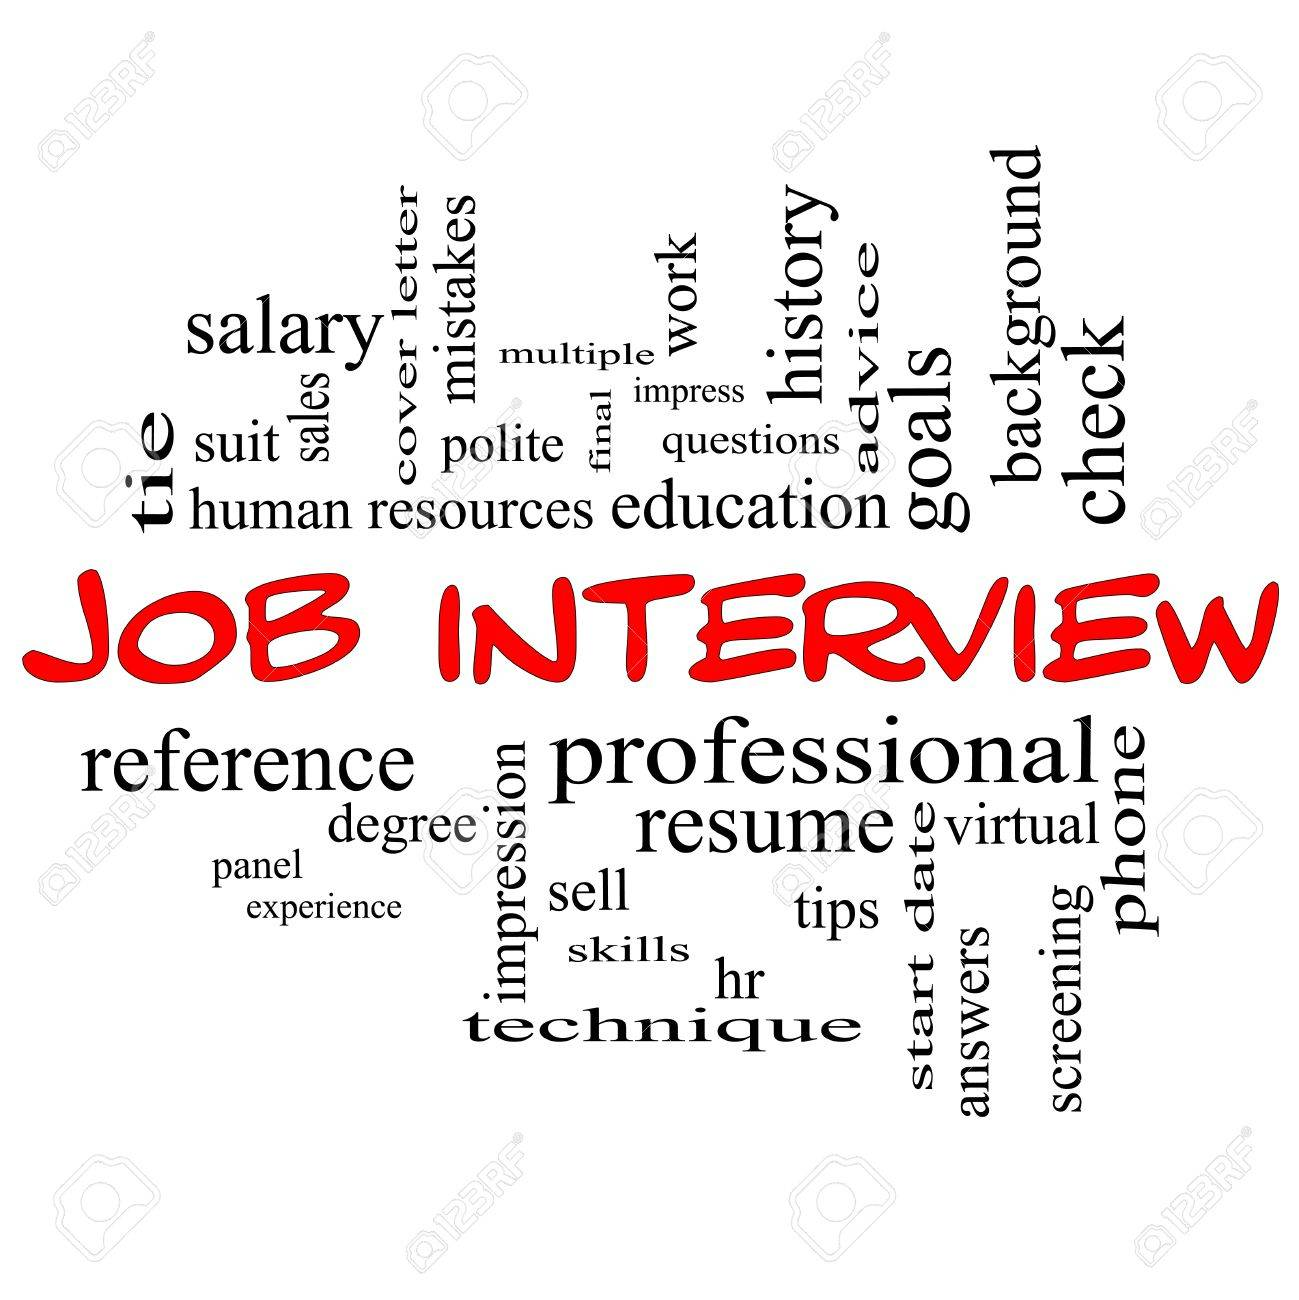 job interview word cloud concept in red caps with great terms